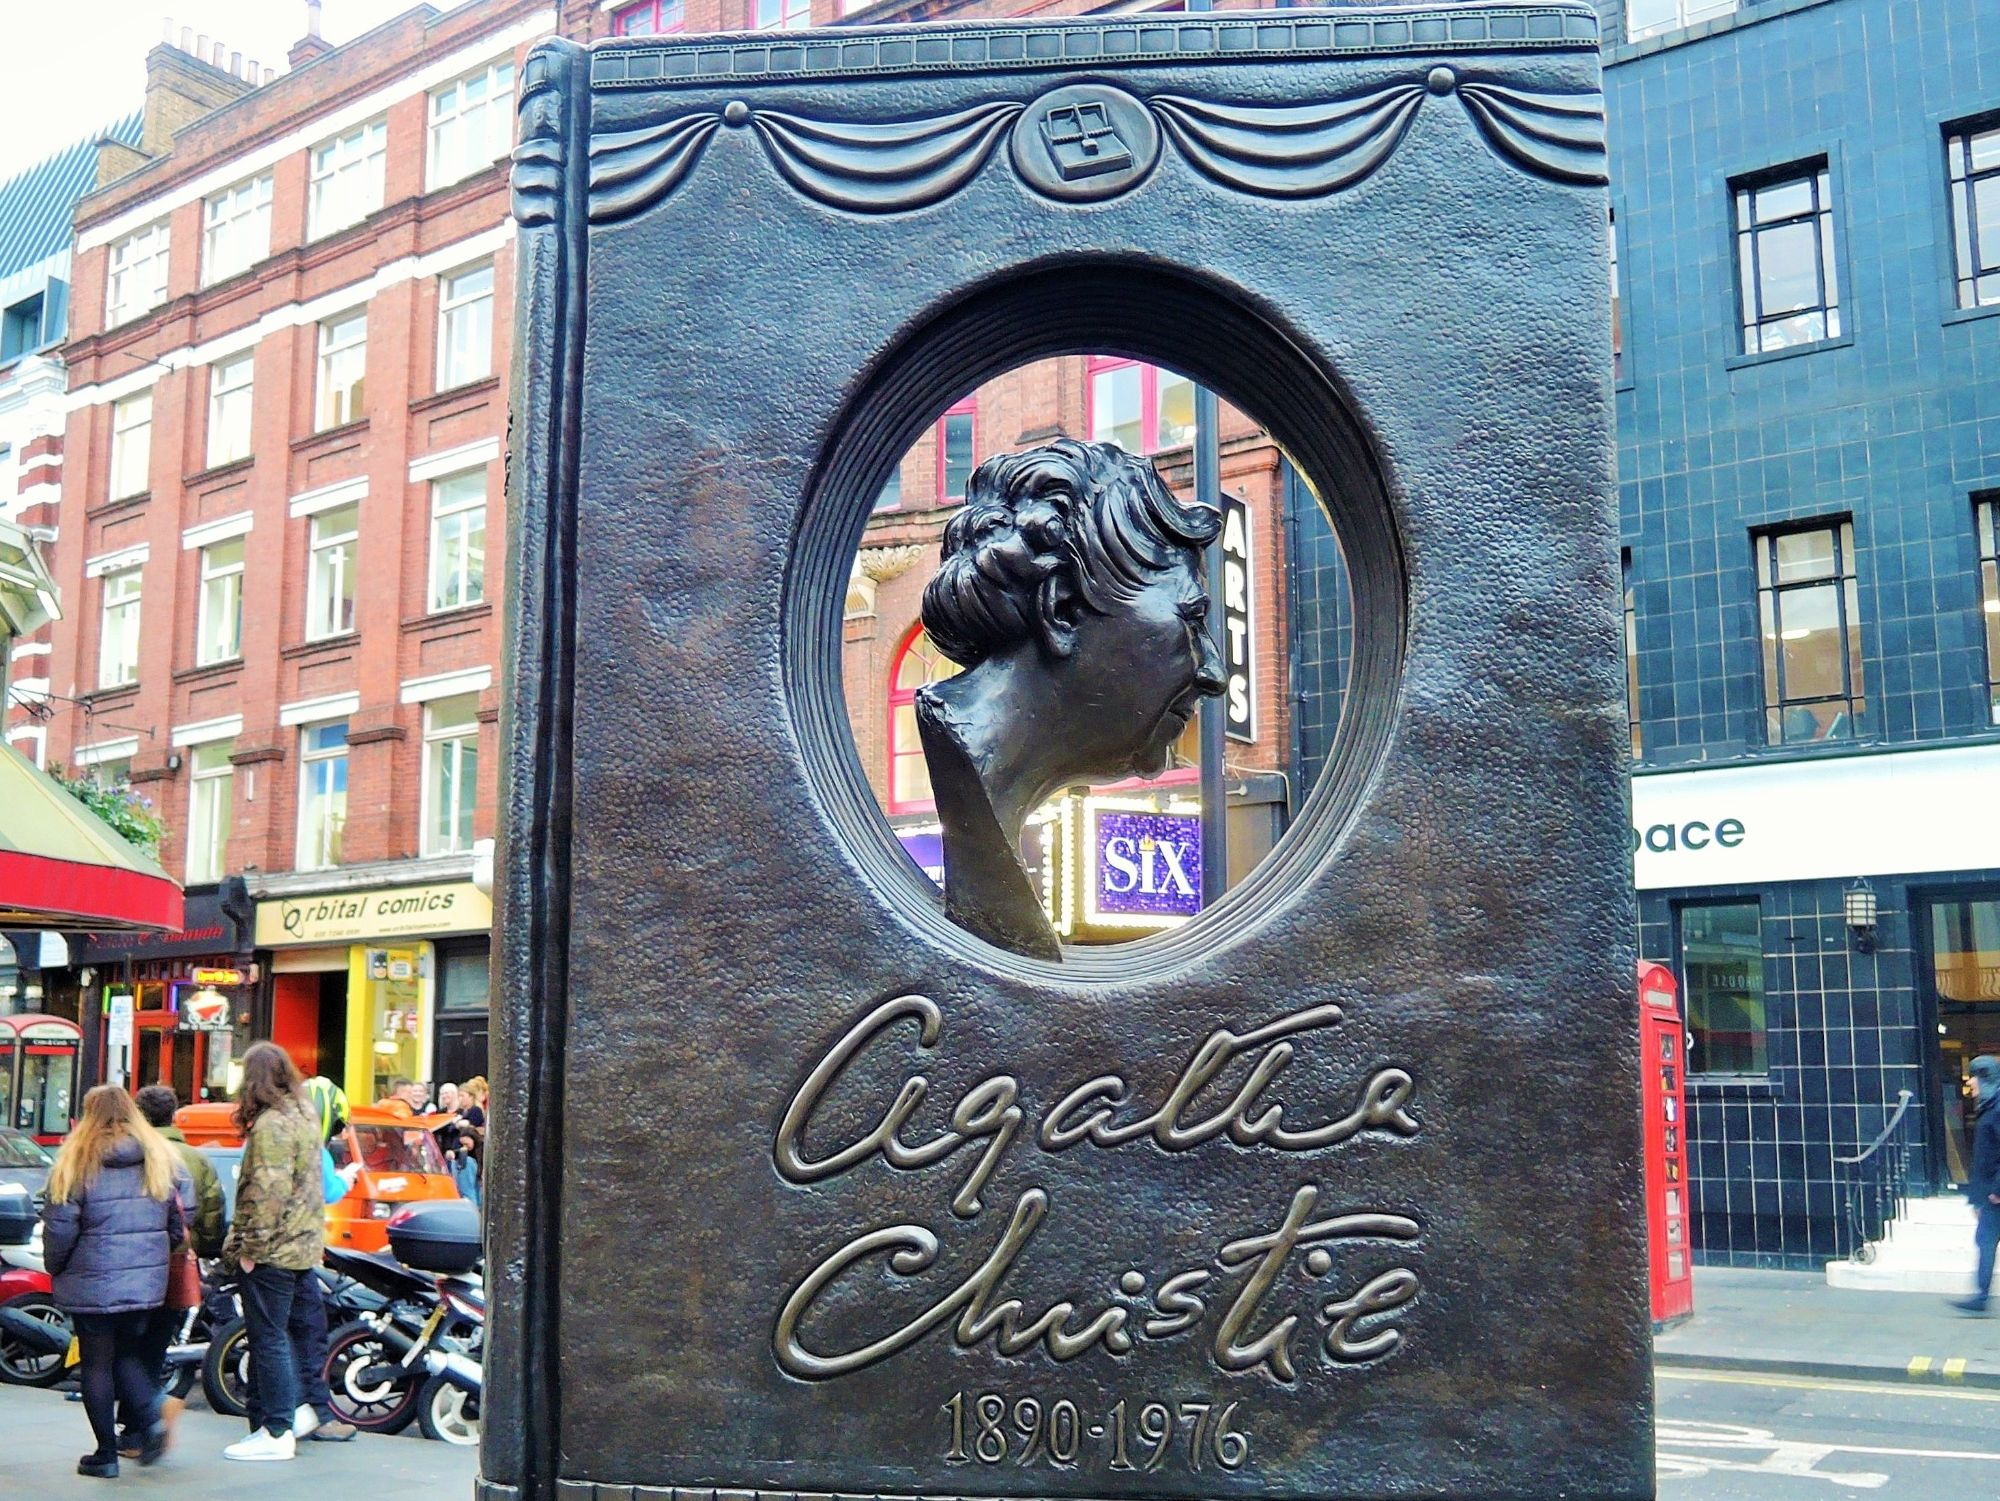 Photo of the Agatha Christie memorial. The sculpture resembles a closed book with an oval opening in the centre, in which there is a bust of Agatha Christie.